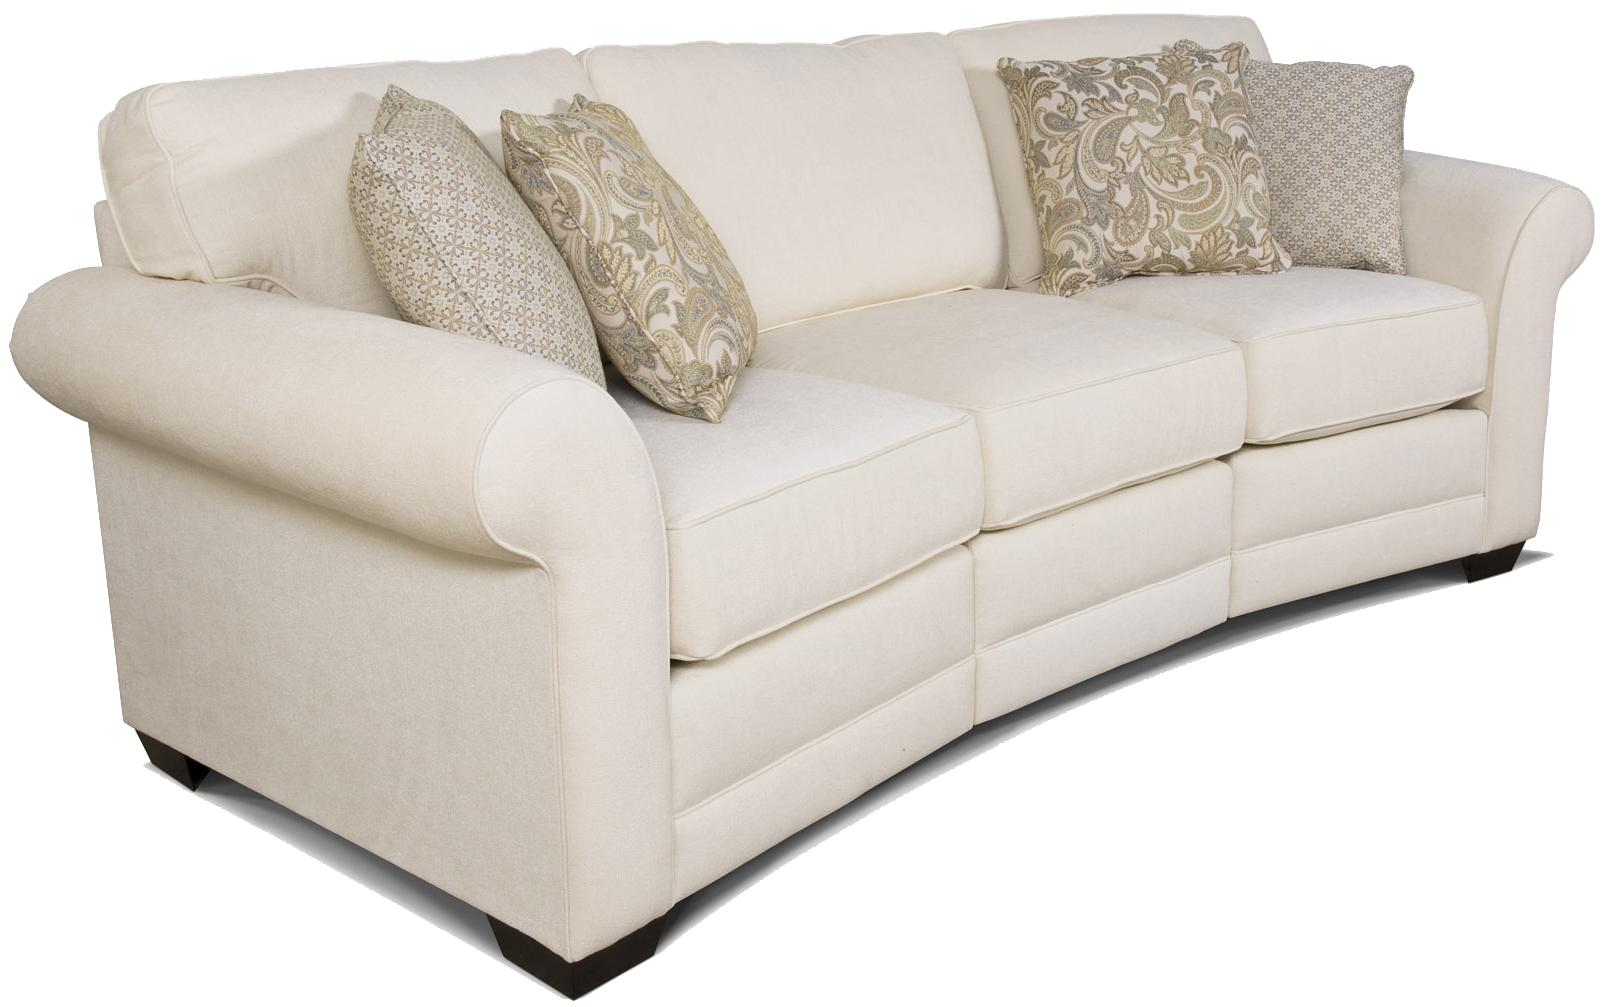 England Brantley Conversation Sofa - Item Number: 5630-36+21+35